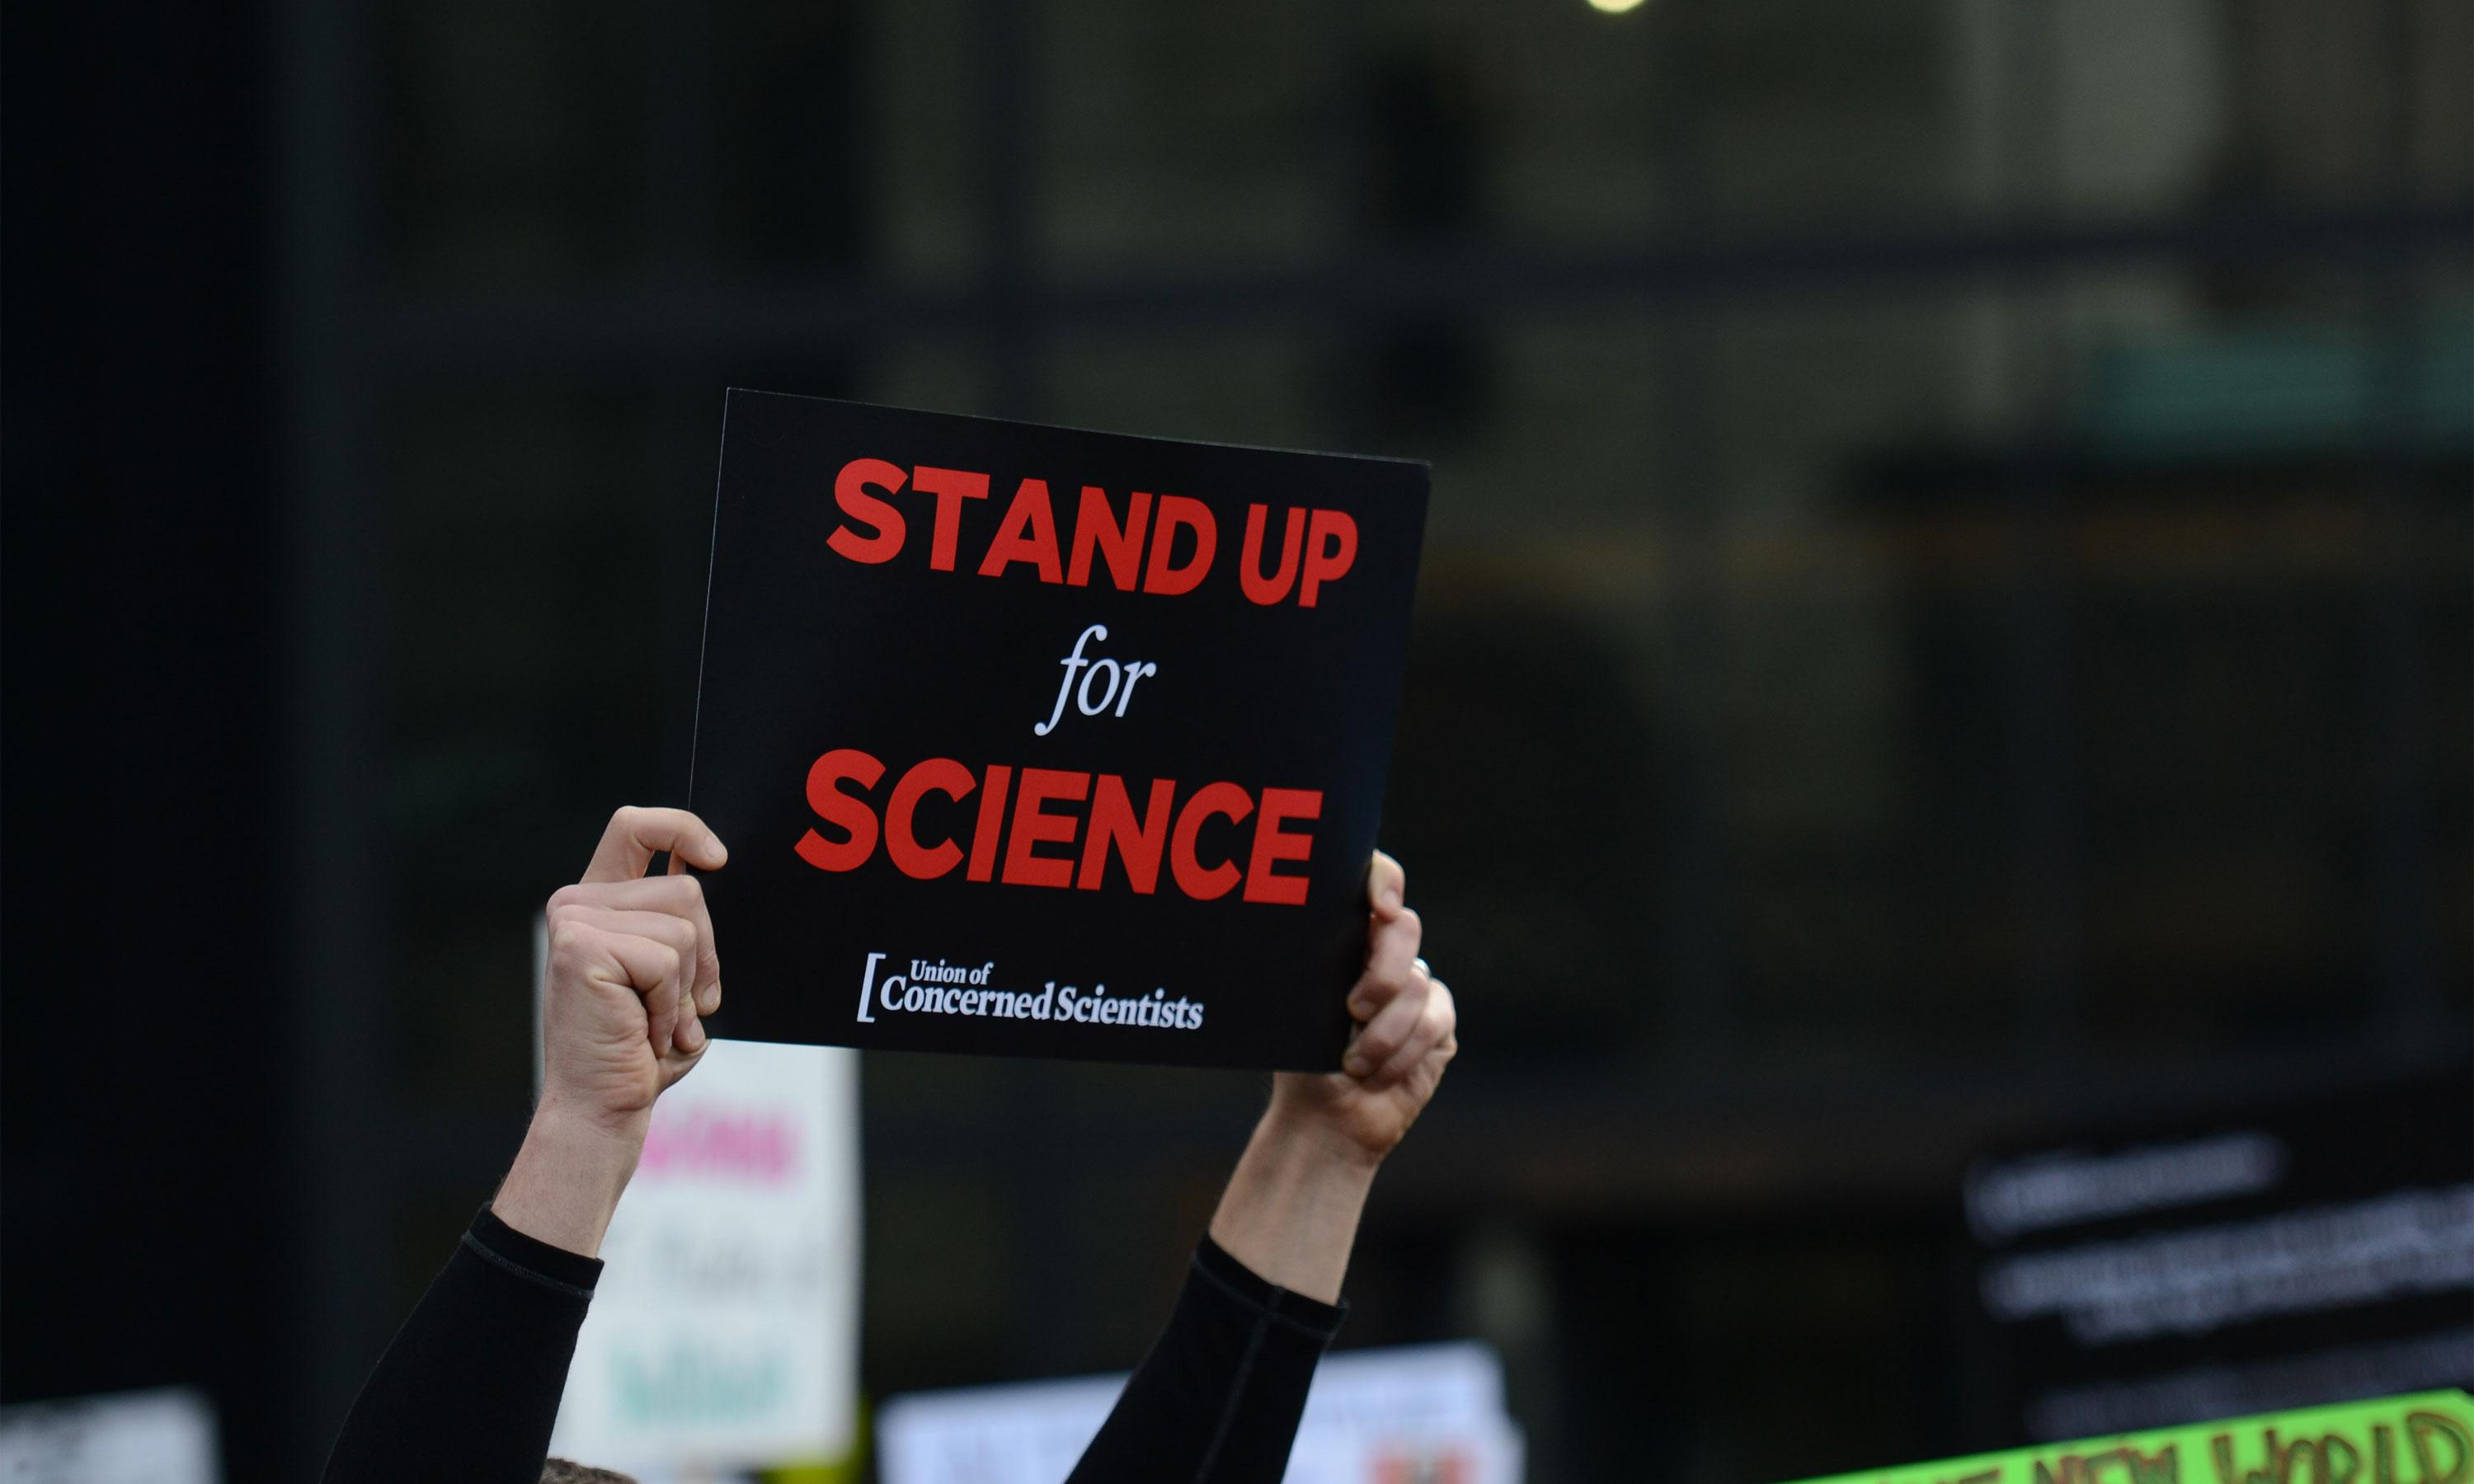 Stand up for Science sign held high